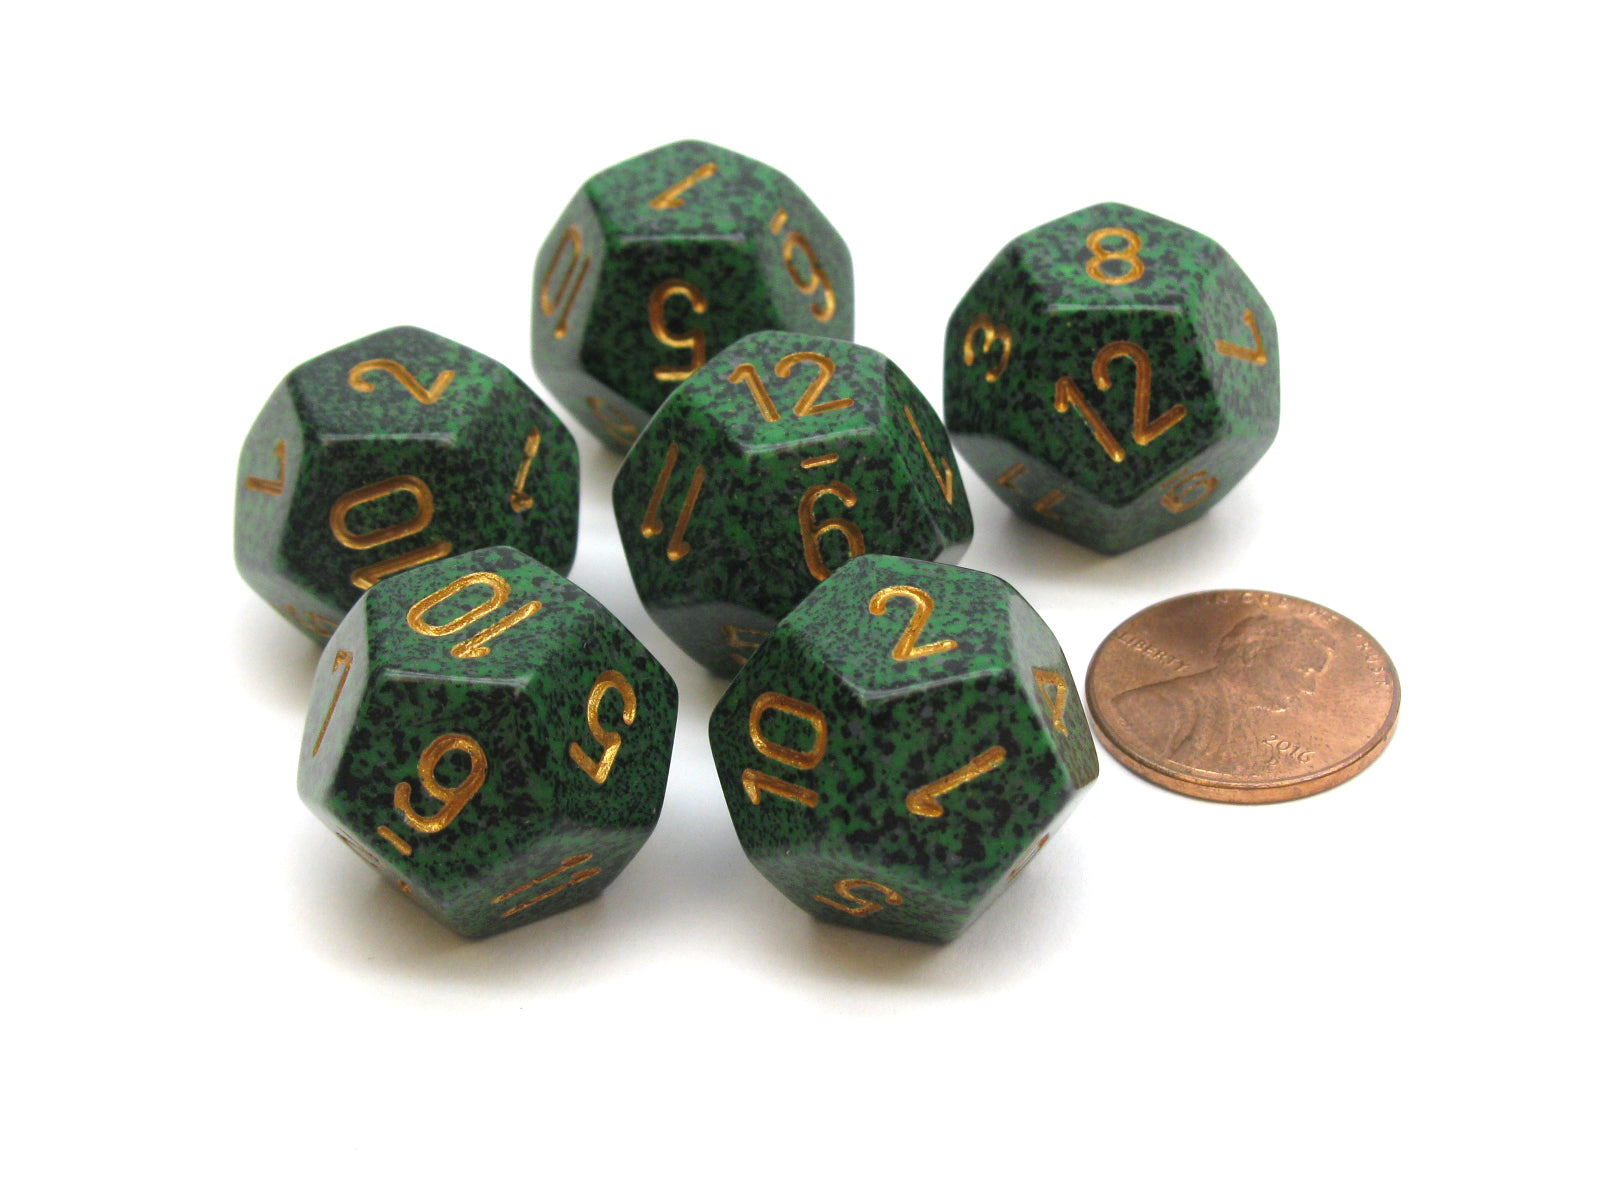 Speckled 18mm 12 Sided D12 Chessex Dice, 6 Pieces -  Golden Recon